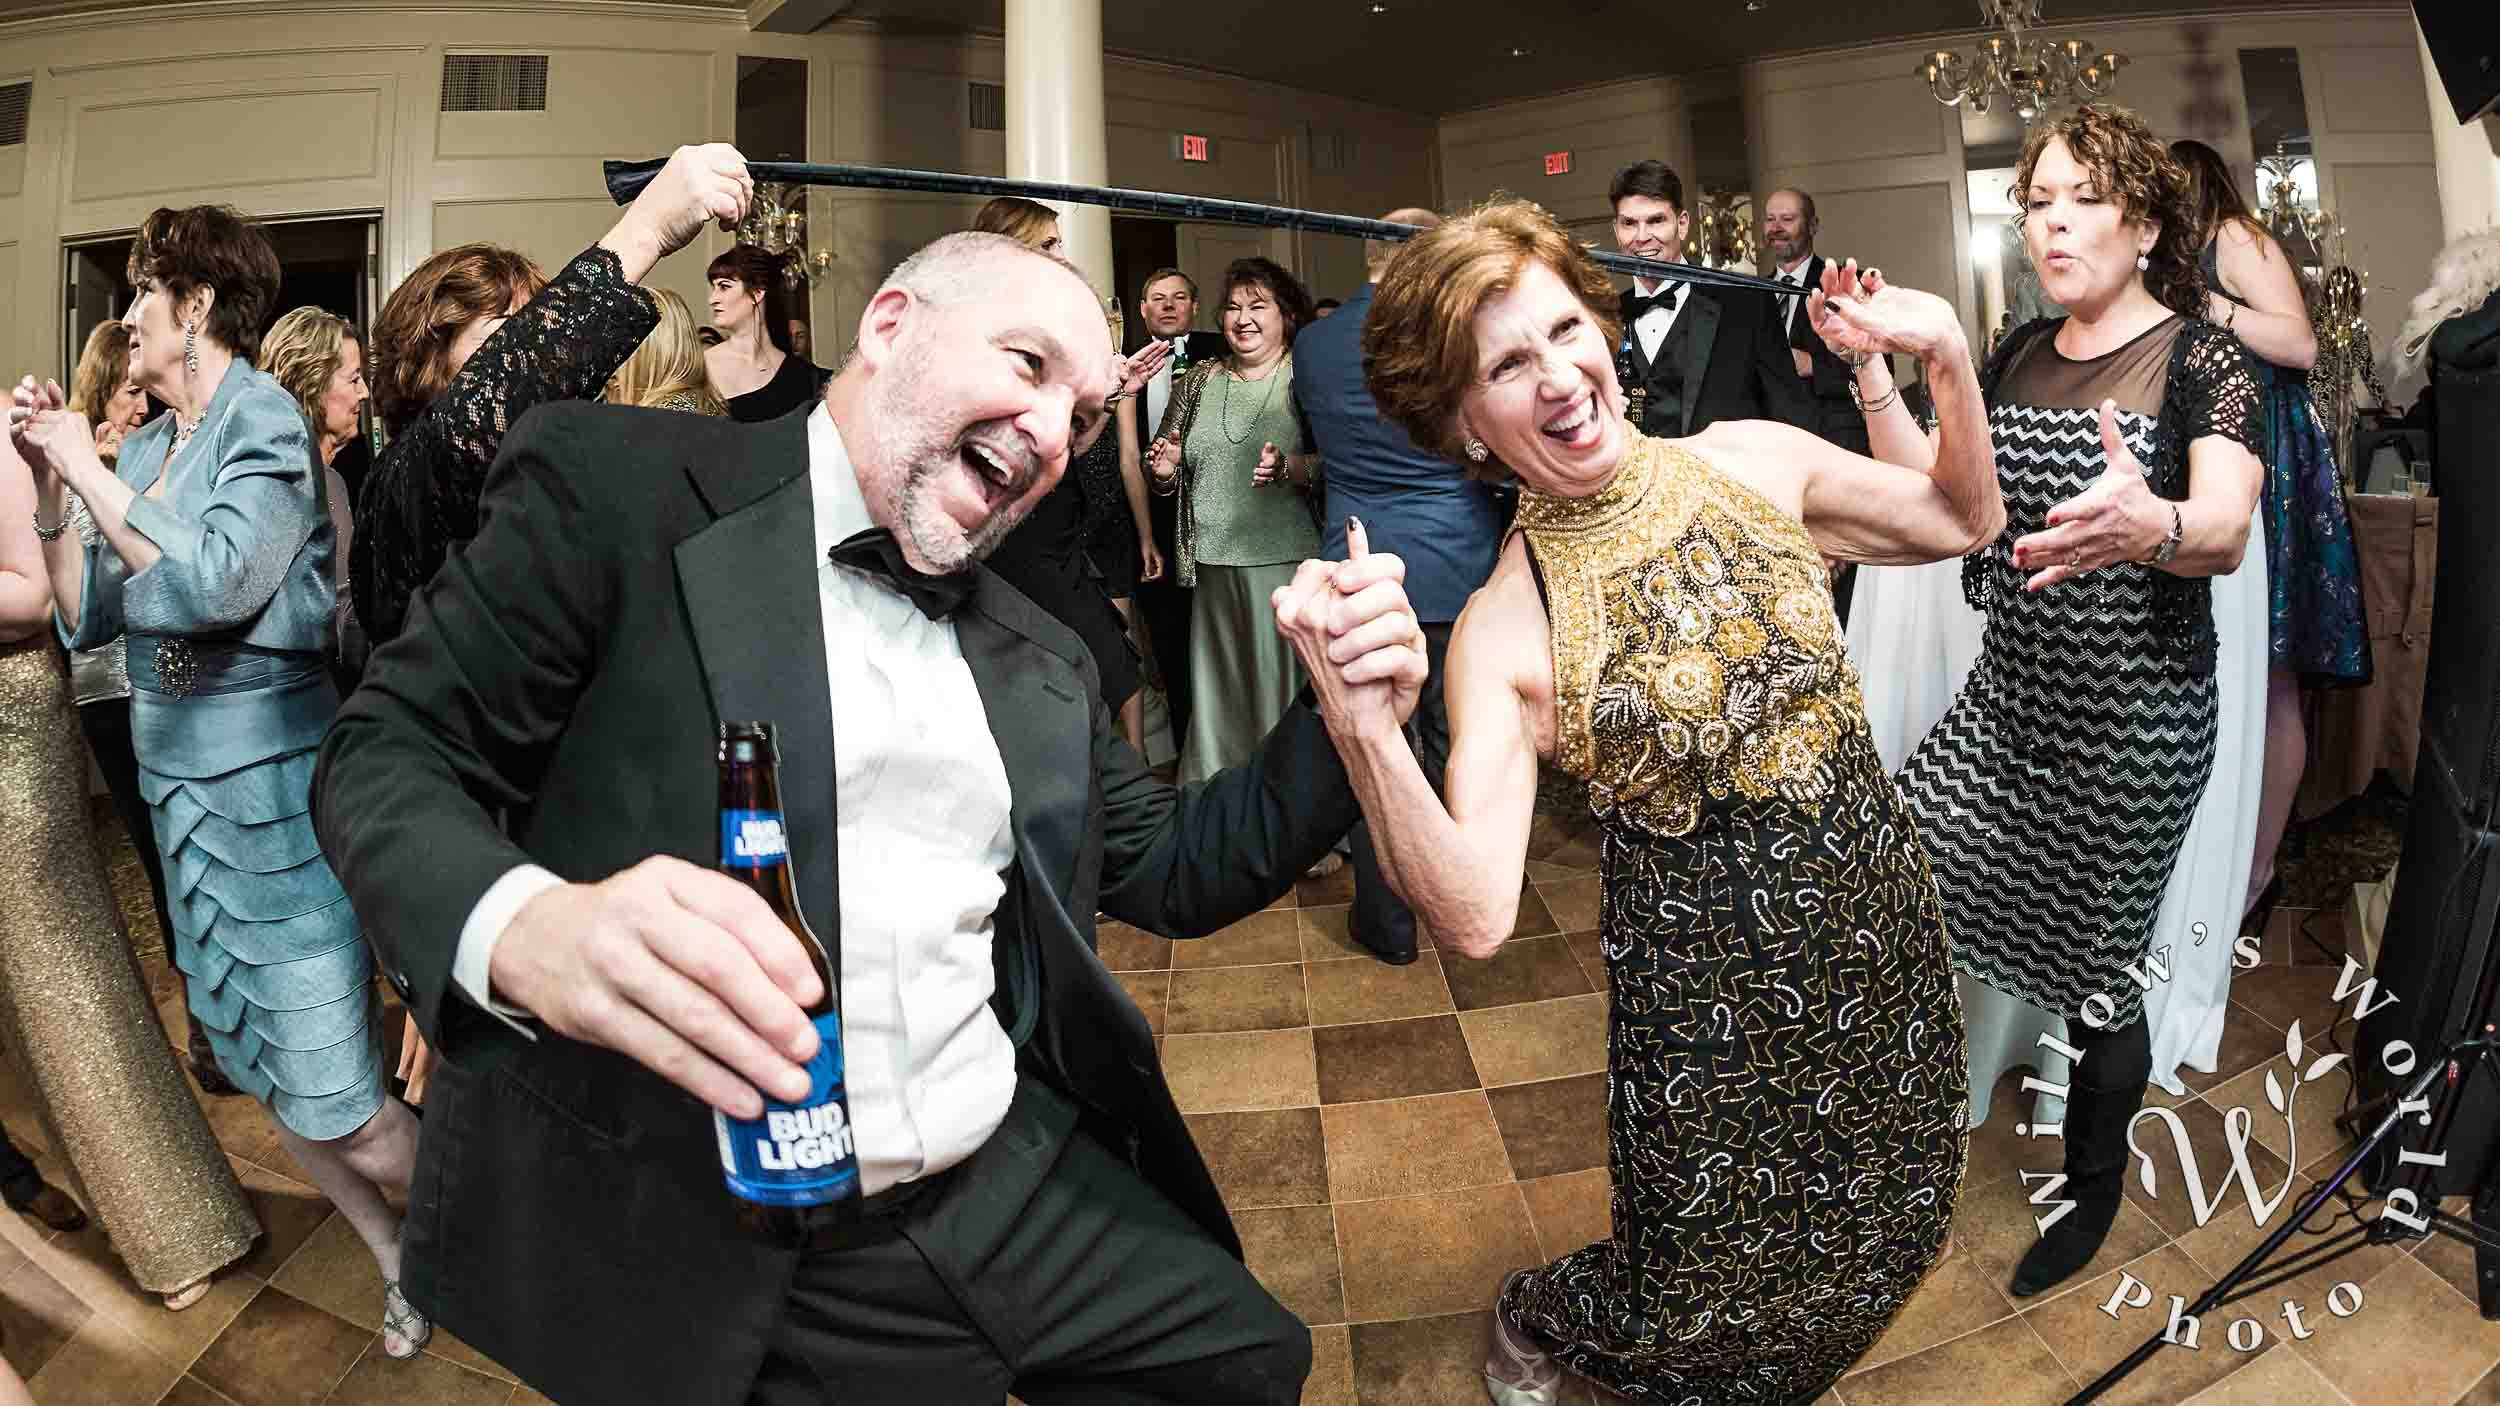 103-Southern-Hotel-Covington-LA-Wedding-Reception-Photo-Willows-World-Photo.jpg